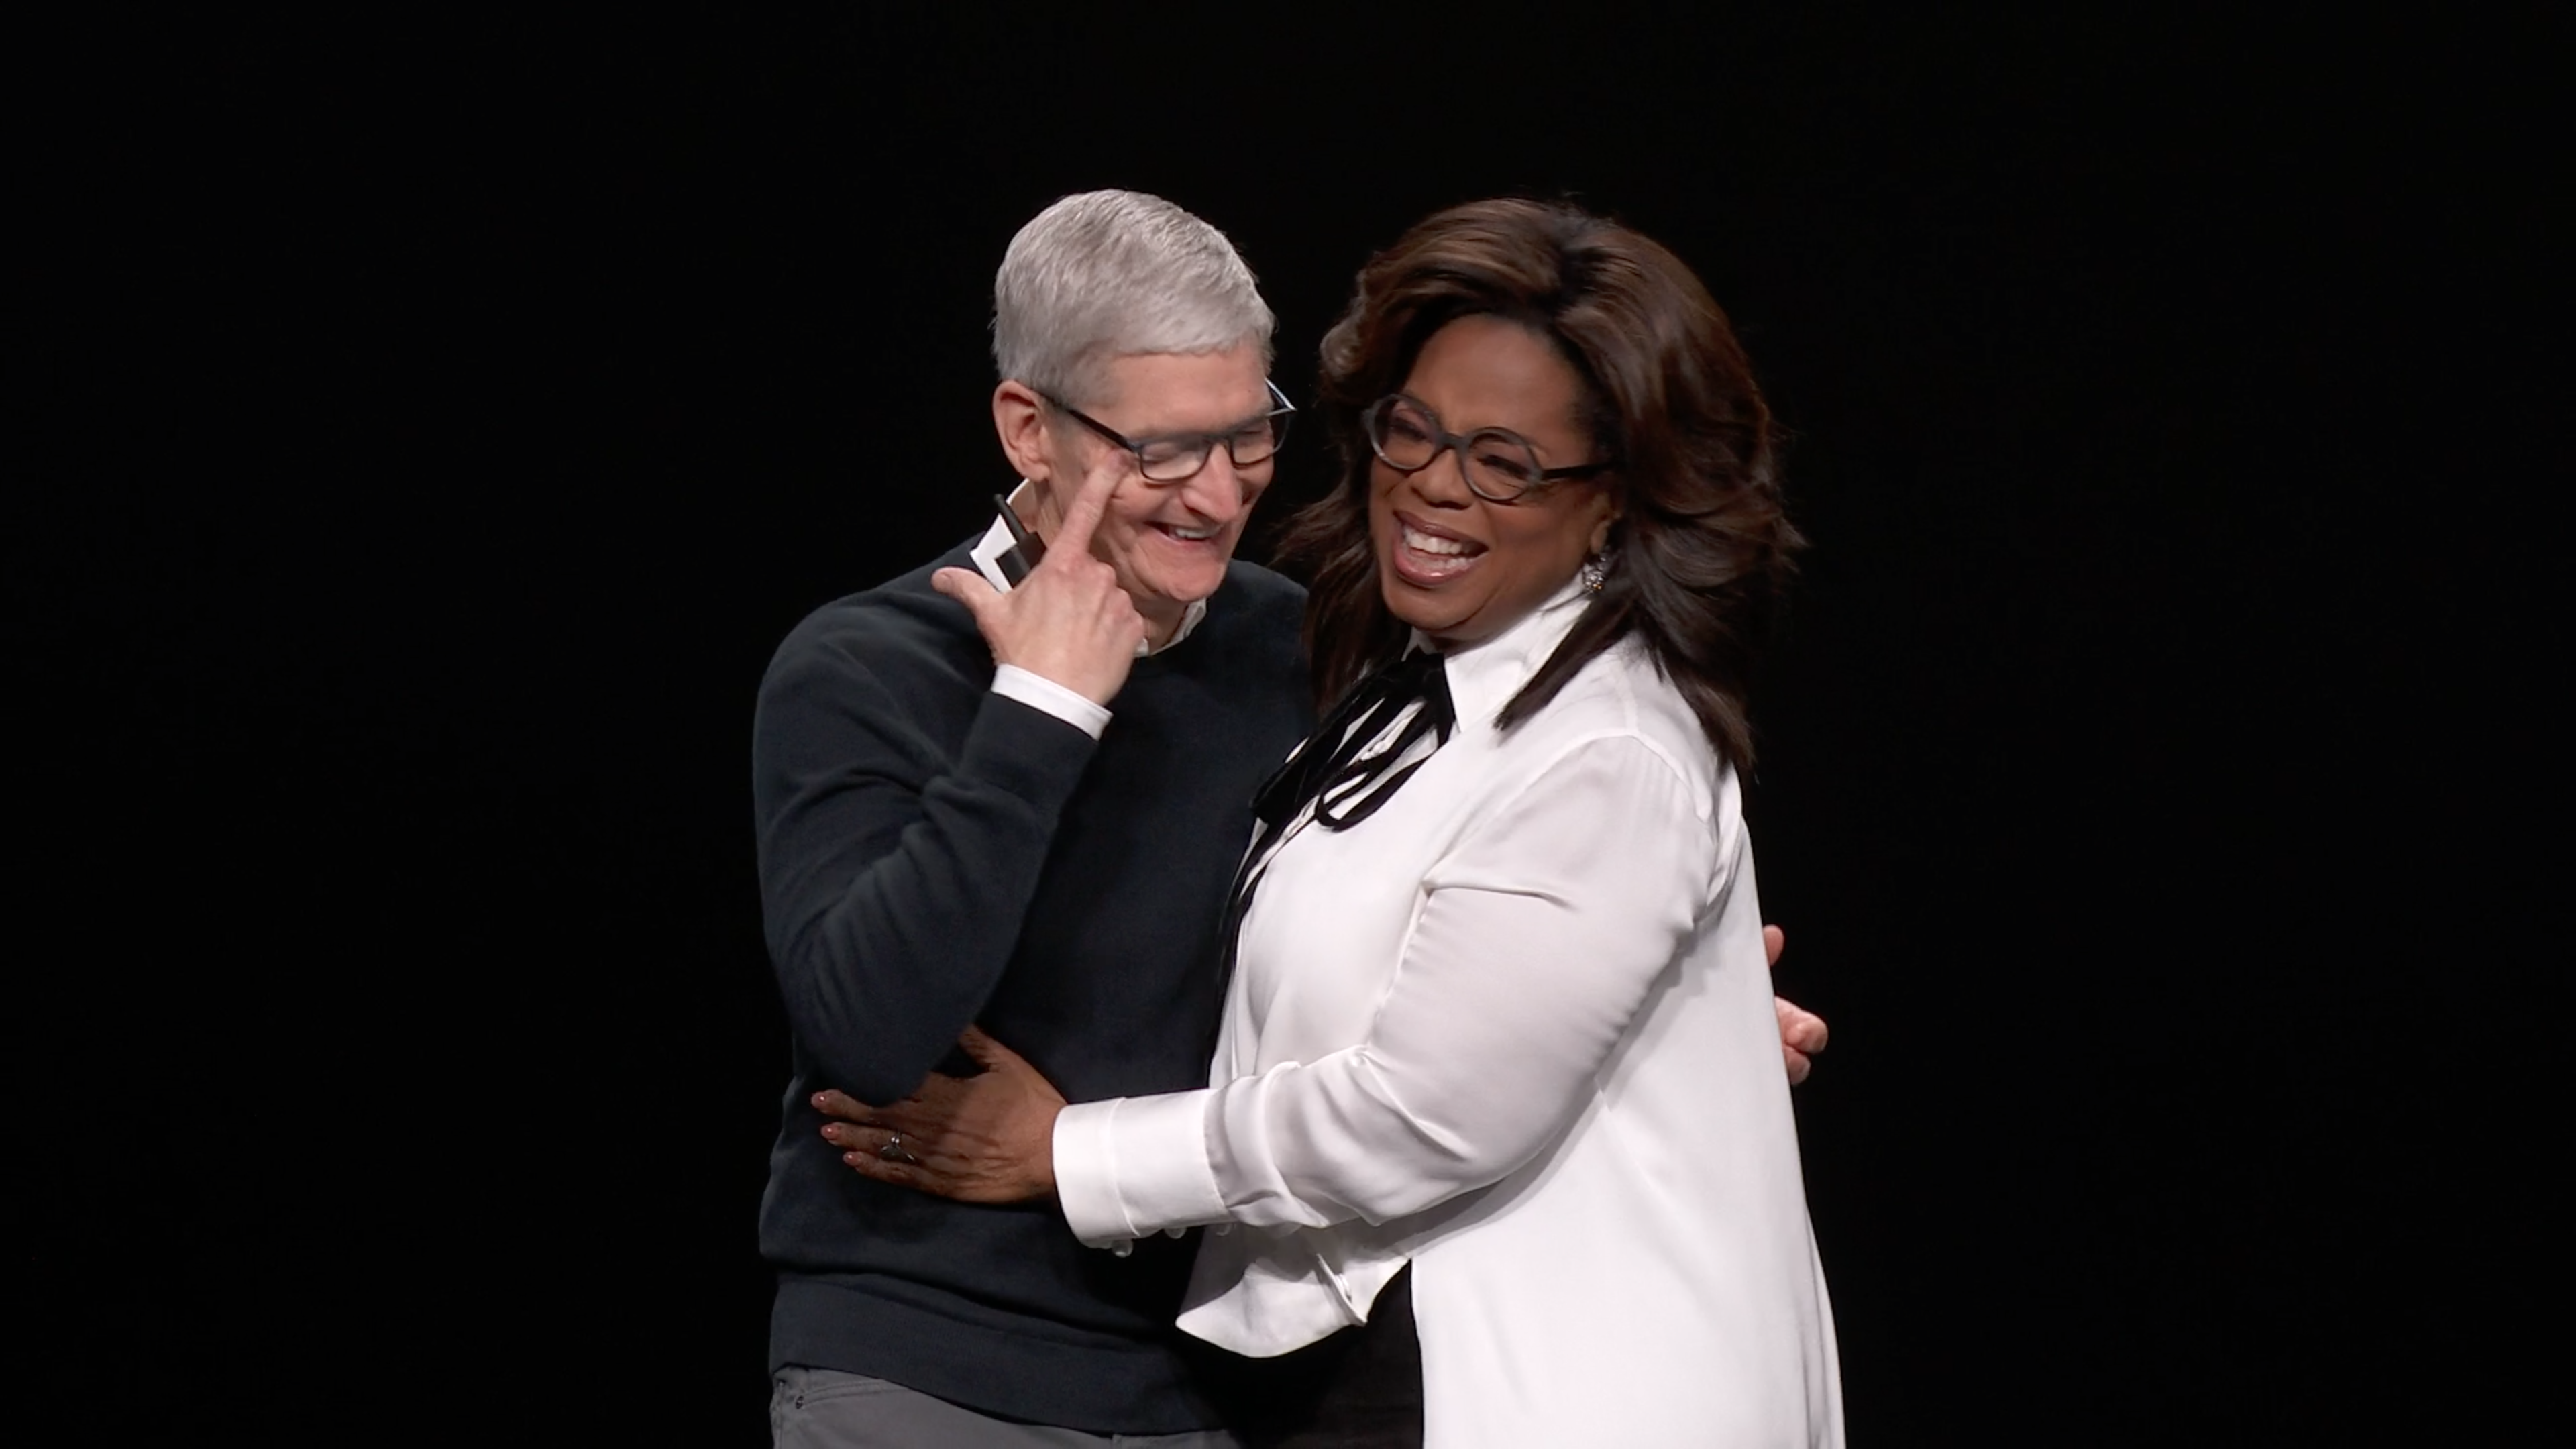 18-tim-cook-and-oprah-winfrey-for-apple-tv-plus-at-apple-event